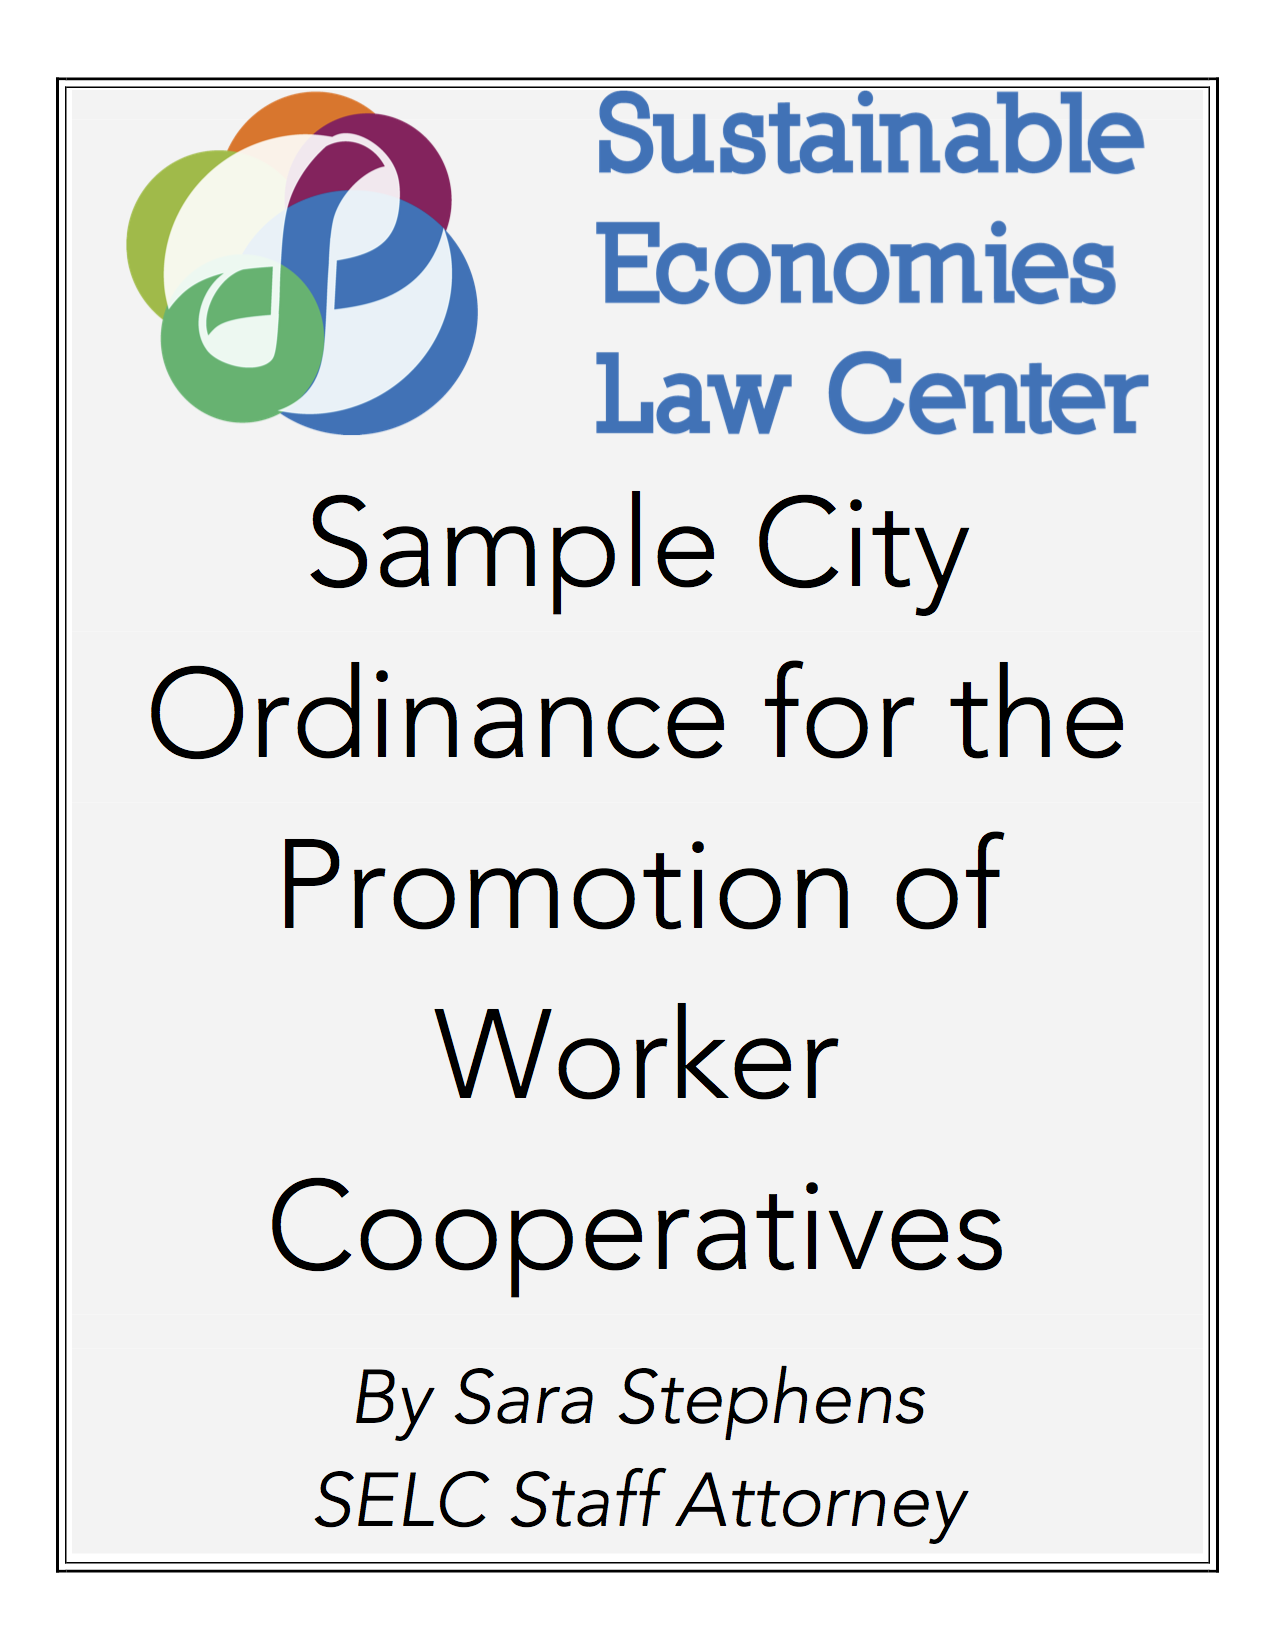 Download our sample city ordinance for the promotion of worker cooperatives!